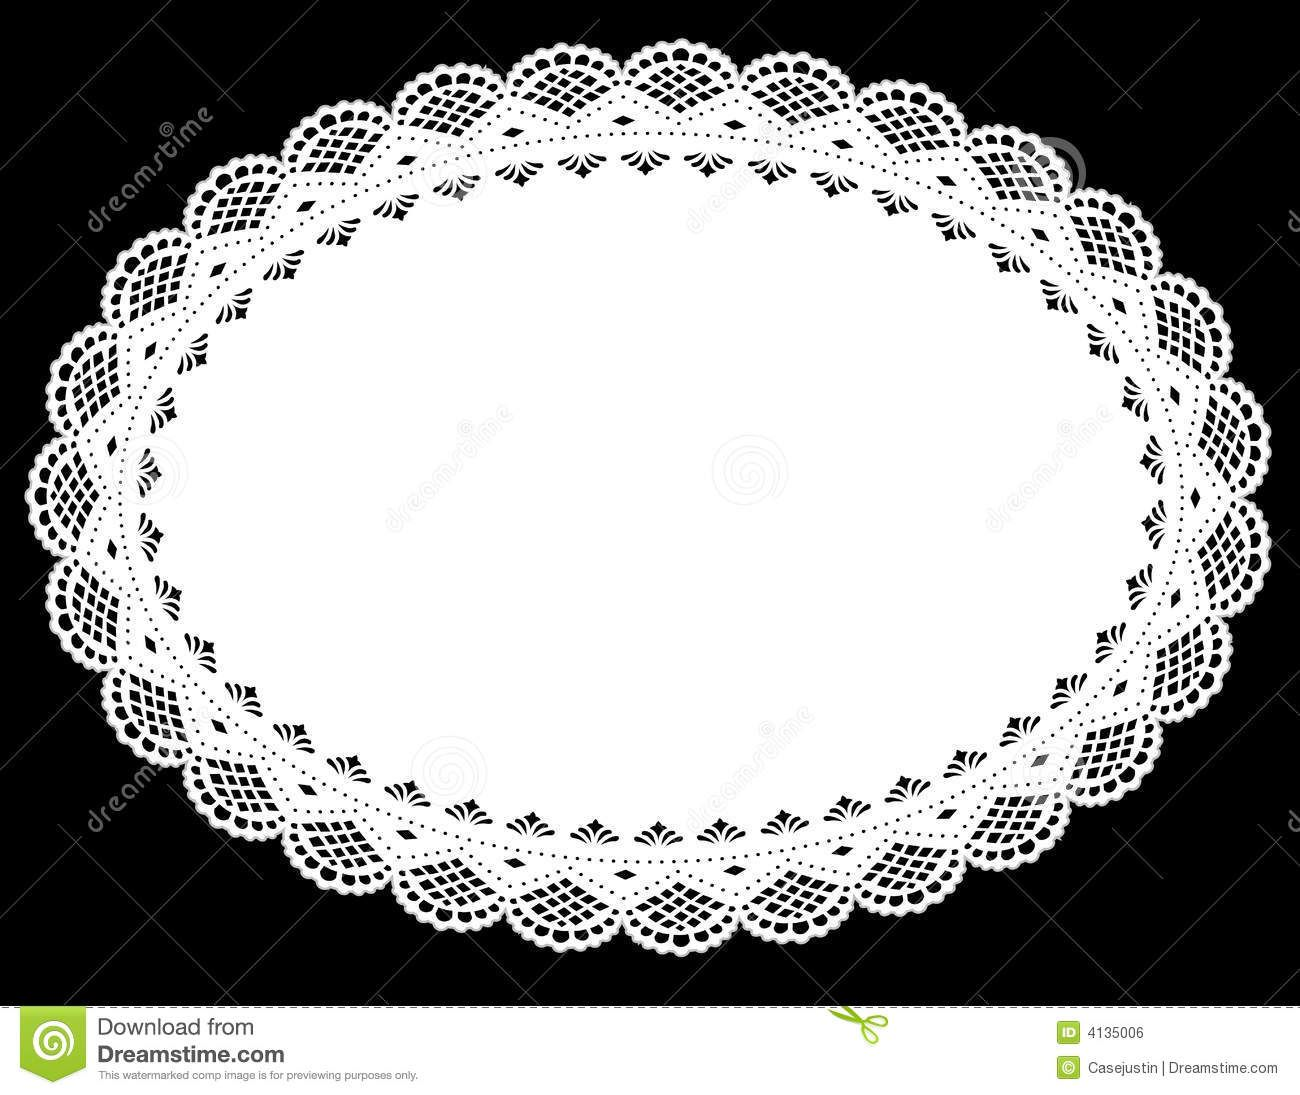 Oval lace doily place mat royalty free stock image image for Table blanc mat